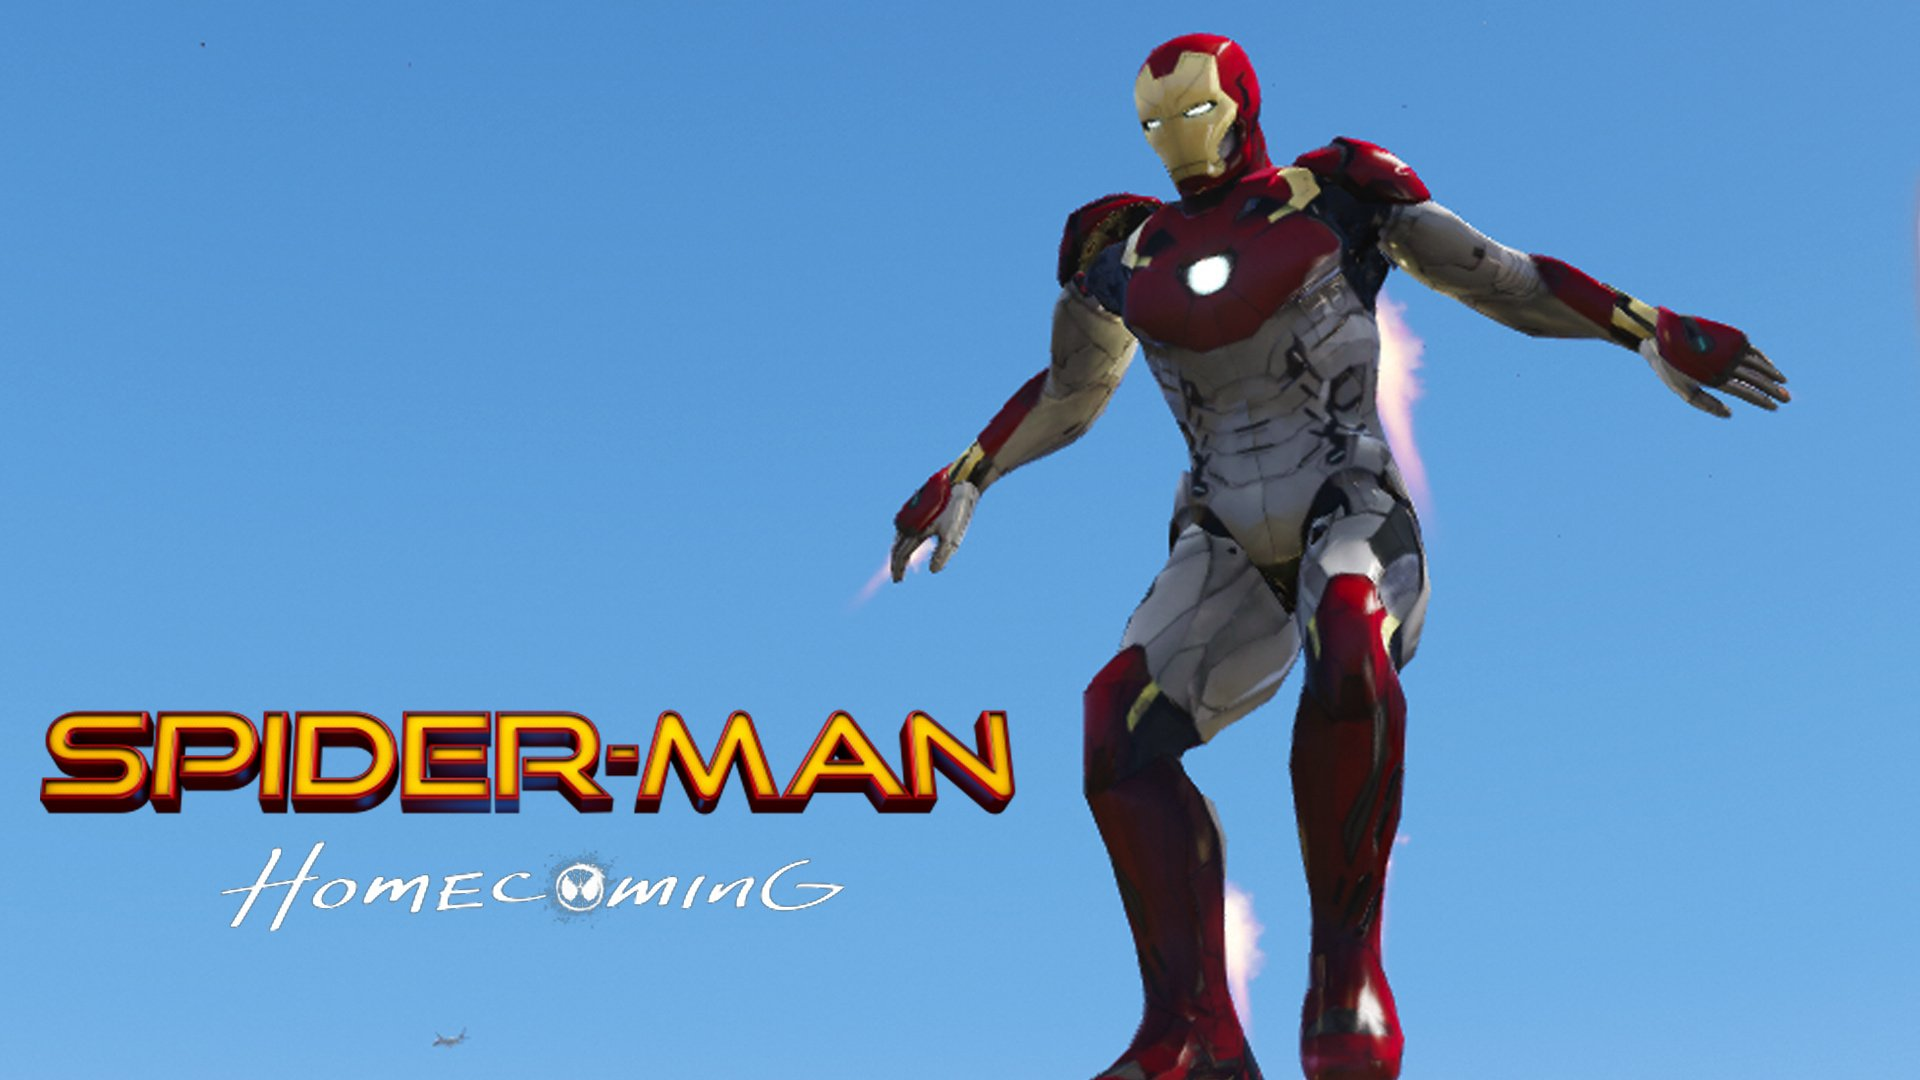 Iron Man Mark 47 (Spider-man Home Coming) [Add-On Ped] - GTA5-Mods com